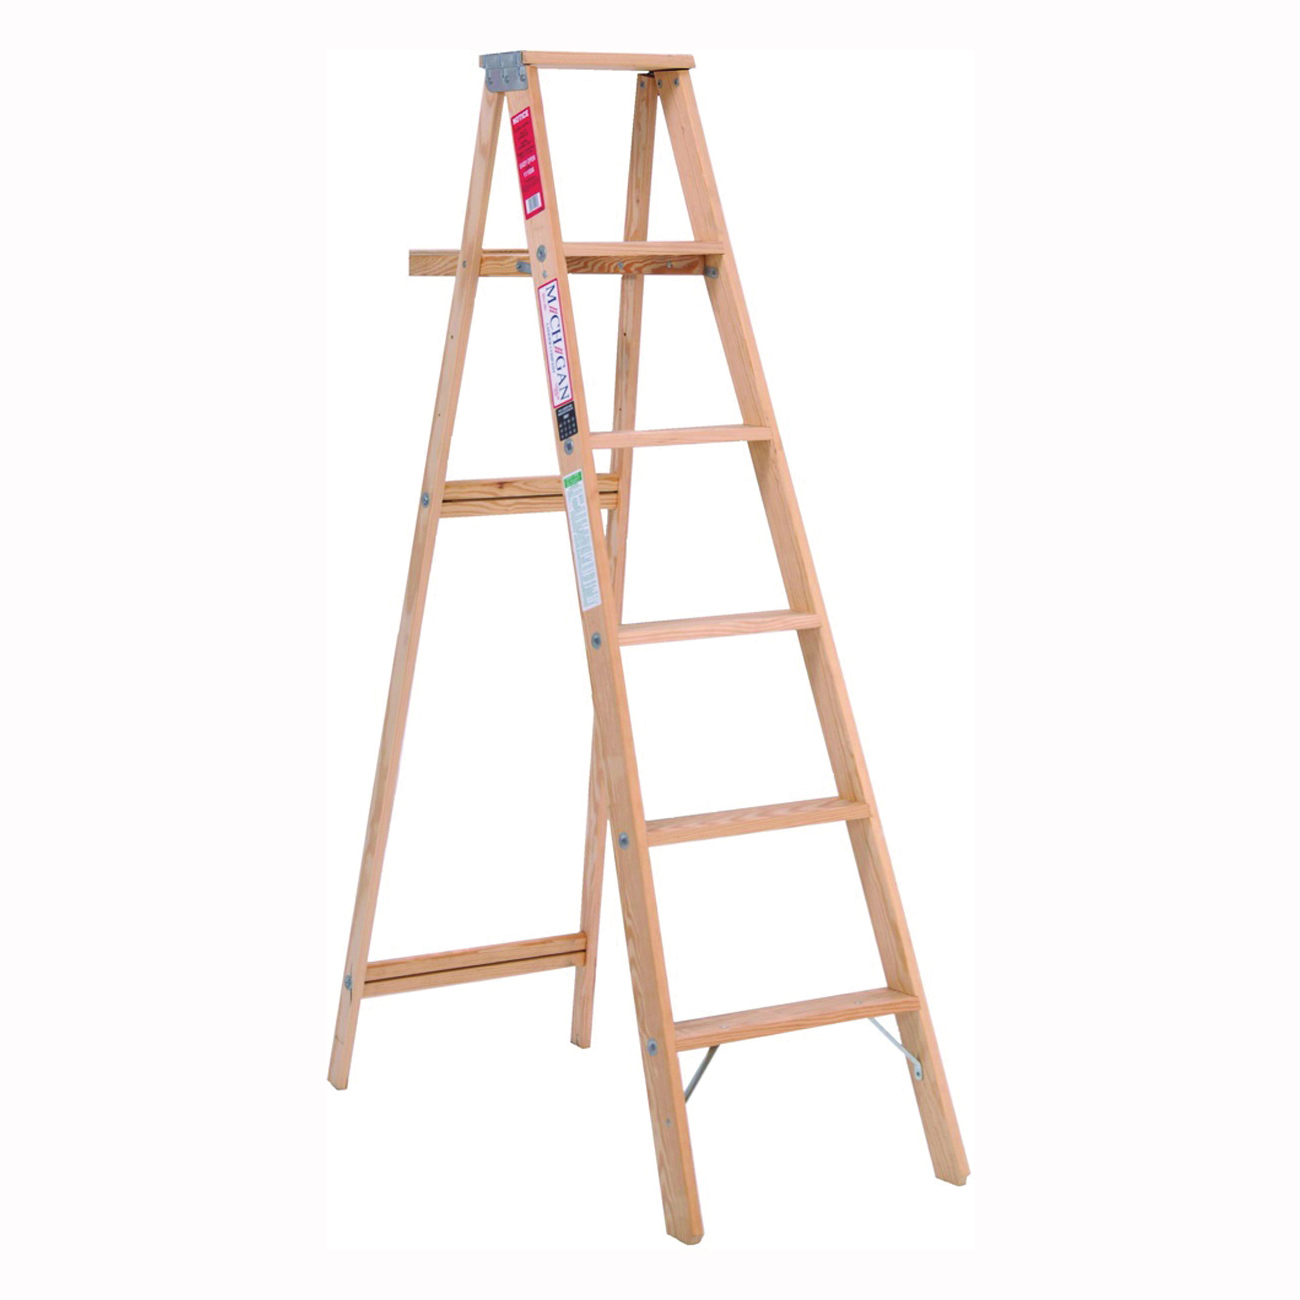 Picture of MICHIGAN LADDER 1100-06 Step Ladder, 200 lb, Type III Duty Rating, Wood, Pine